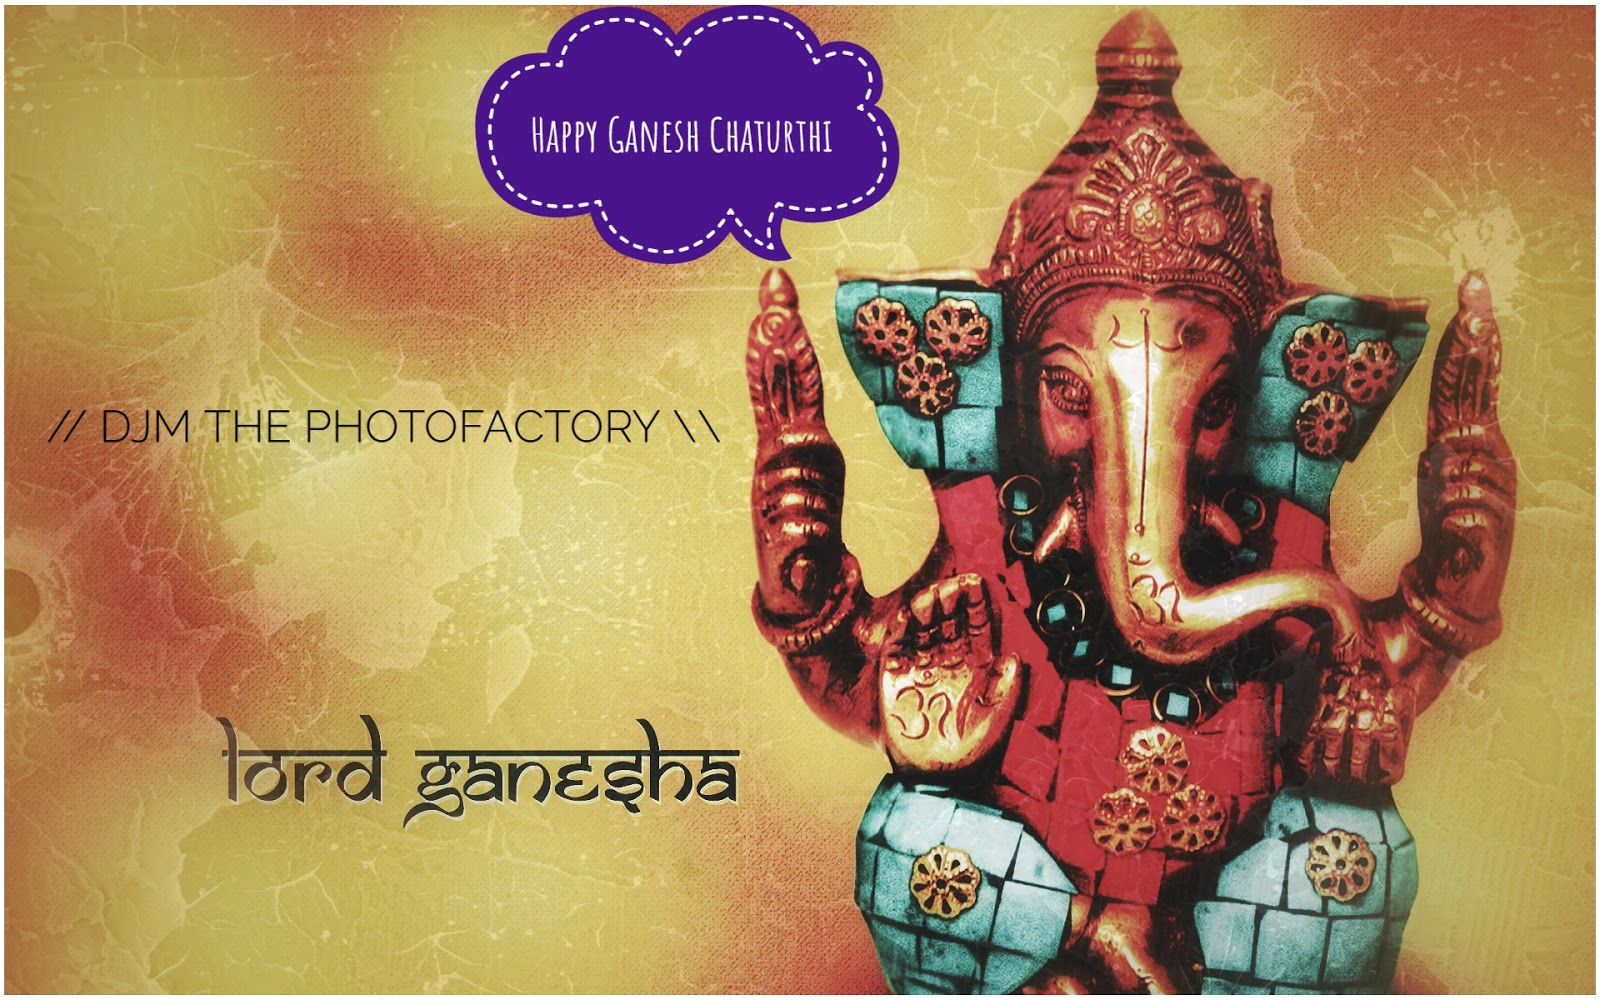 Ganesh Chaturthi Wishes Images 2019, Photos, Quotes, Messages, Status, Wallpapers